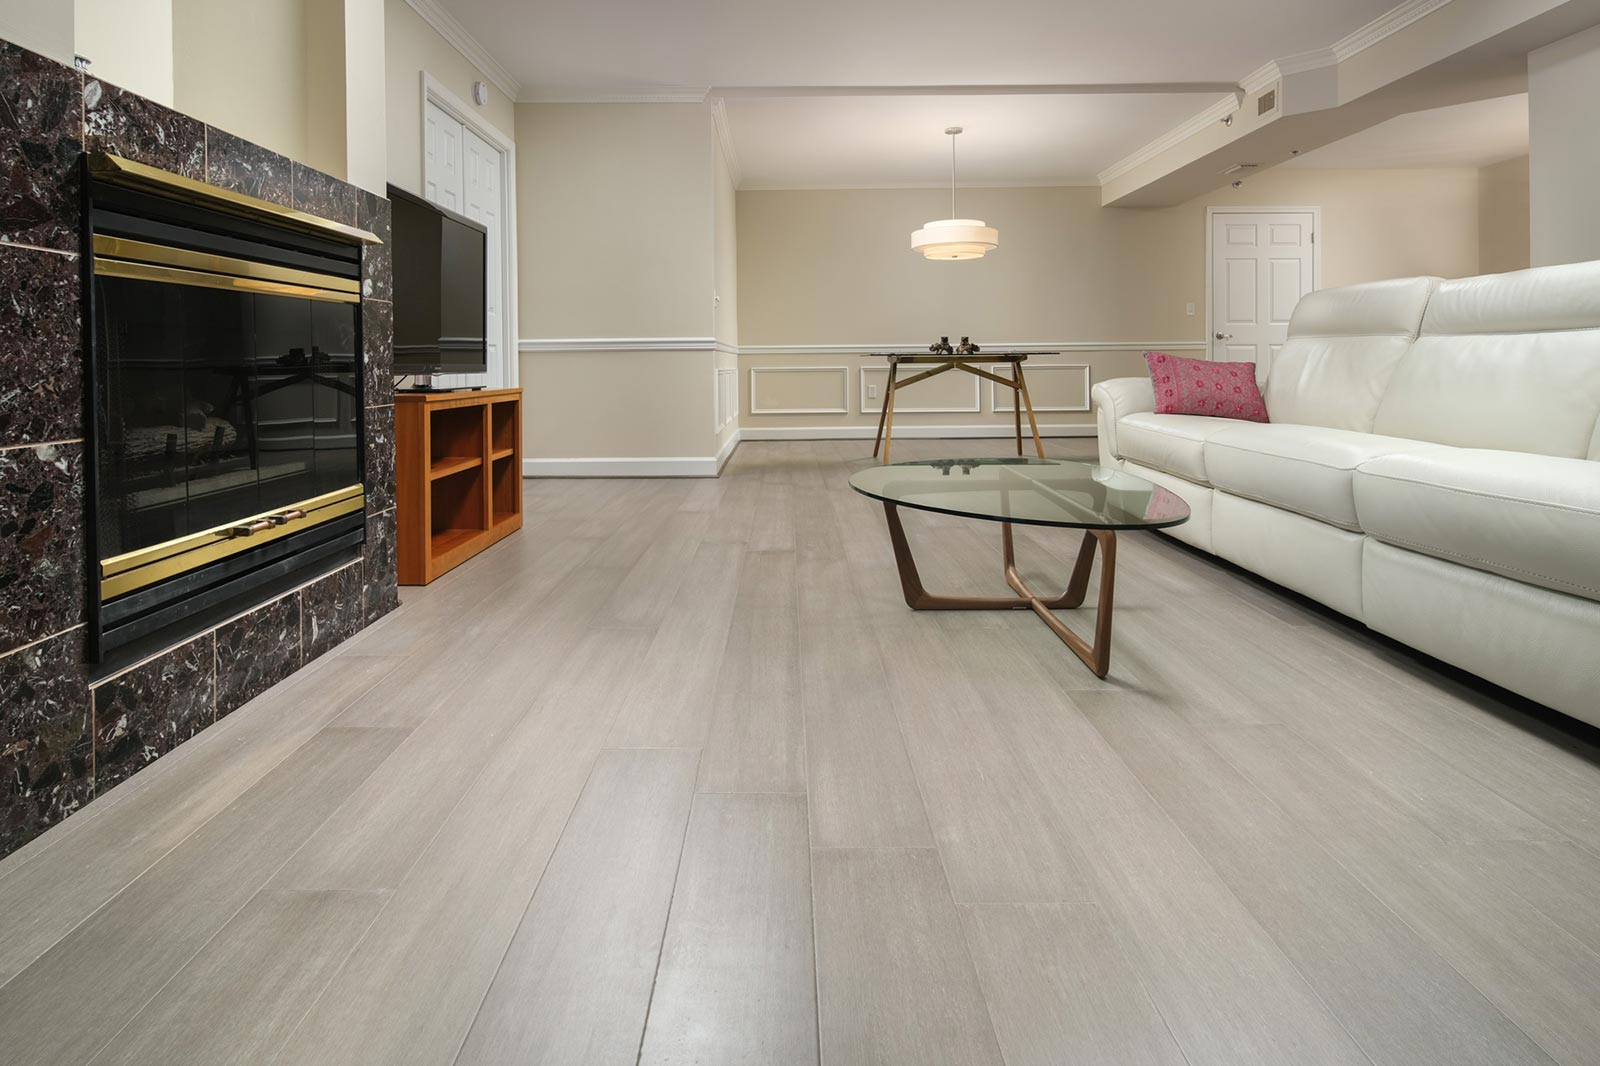 Rustic Mist Light Grey Washed Bamboo Flooring